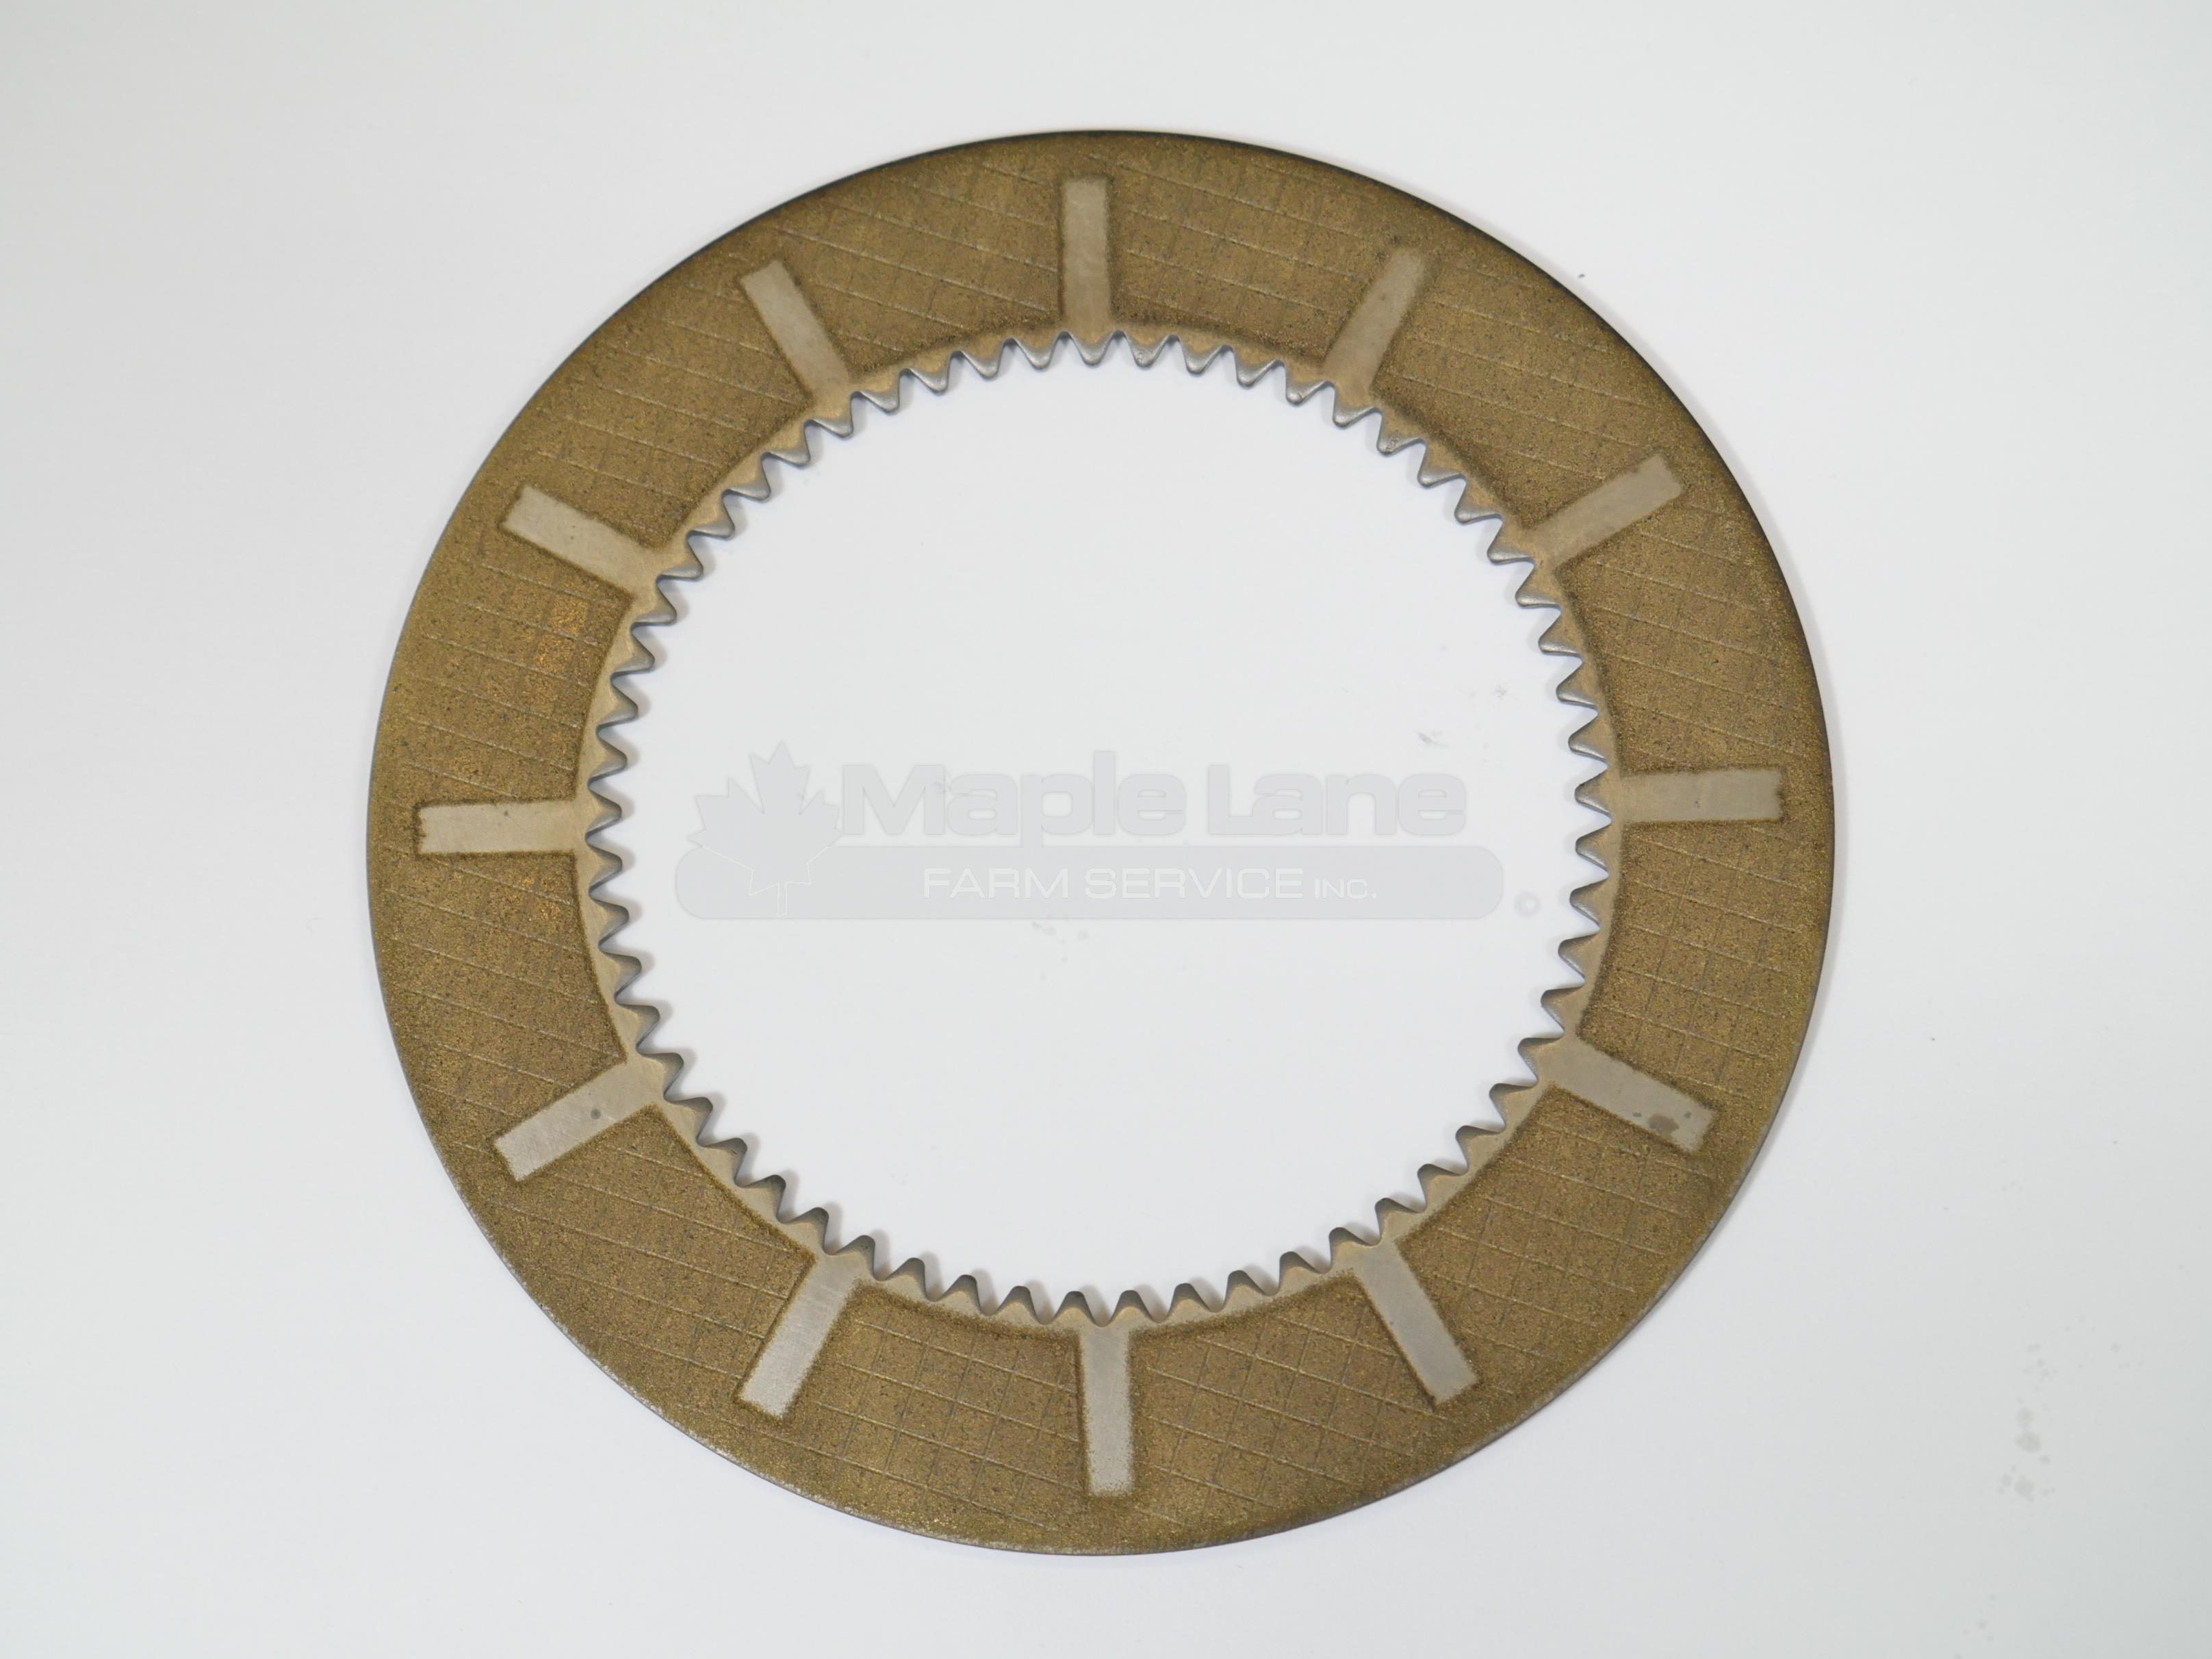 3387347M2 Friction Disc